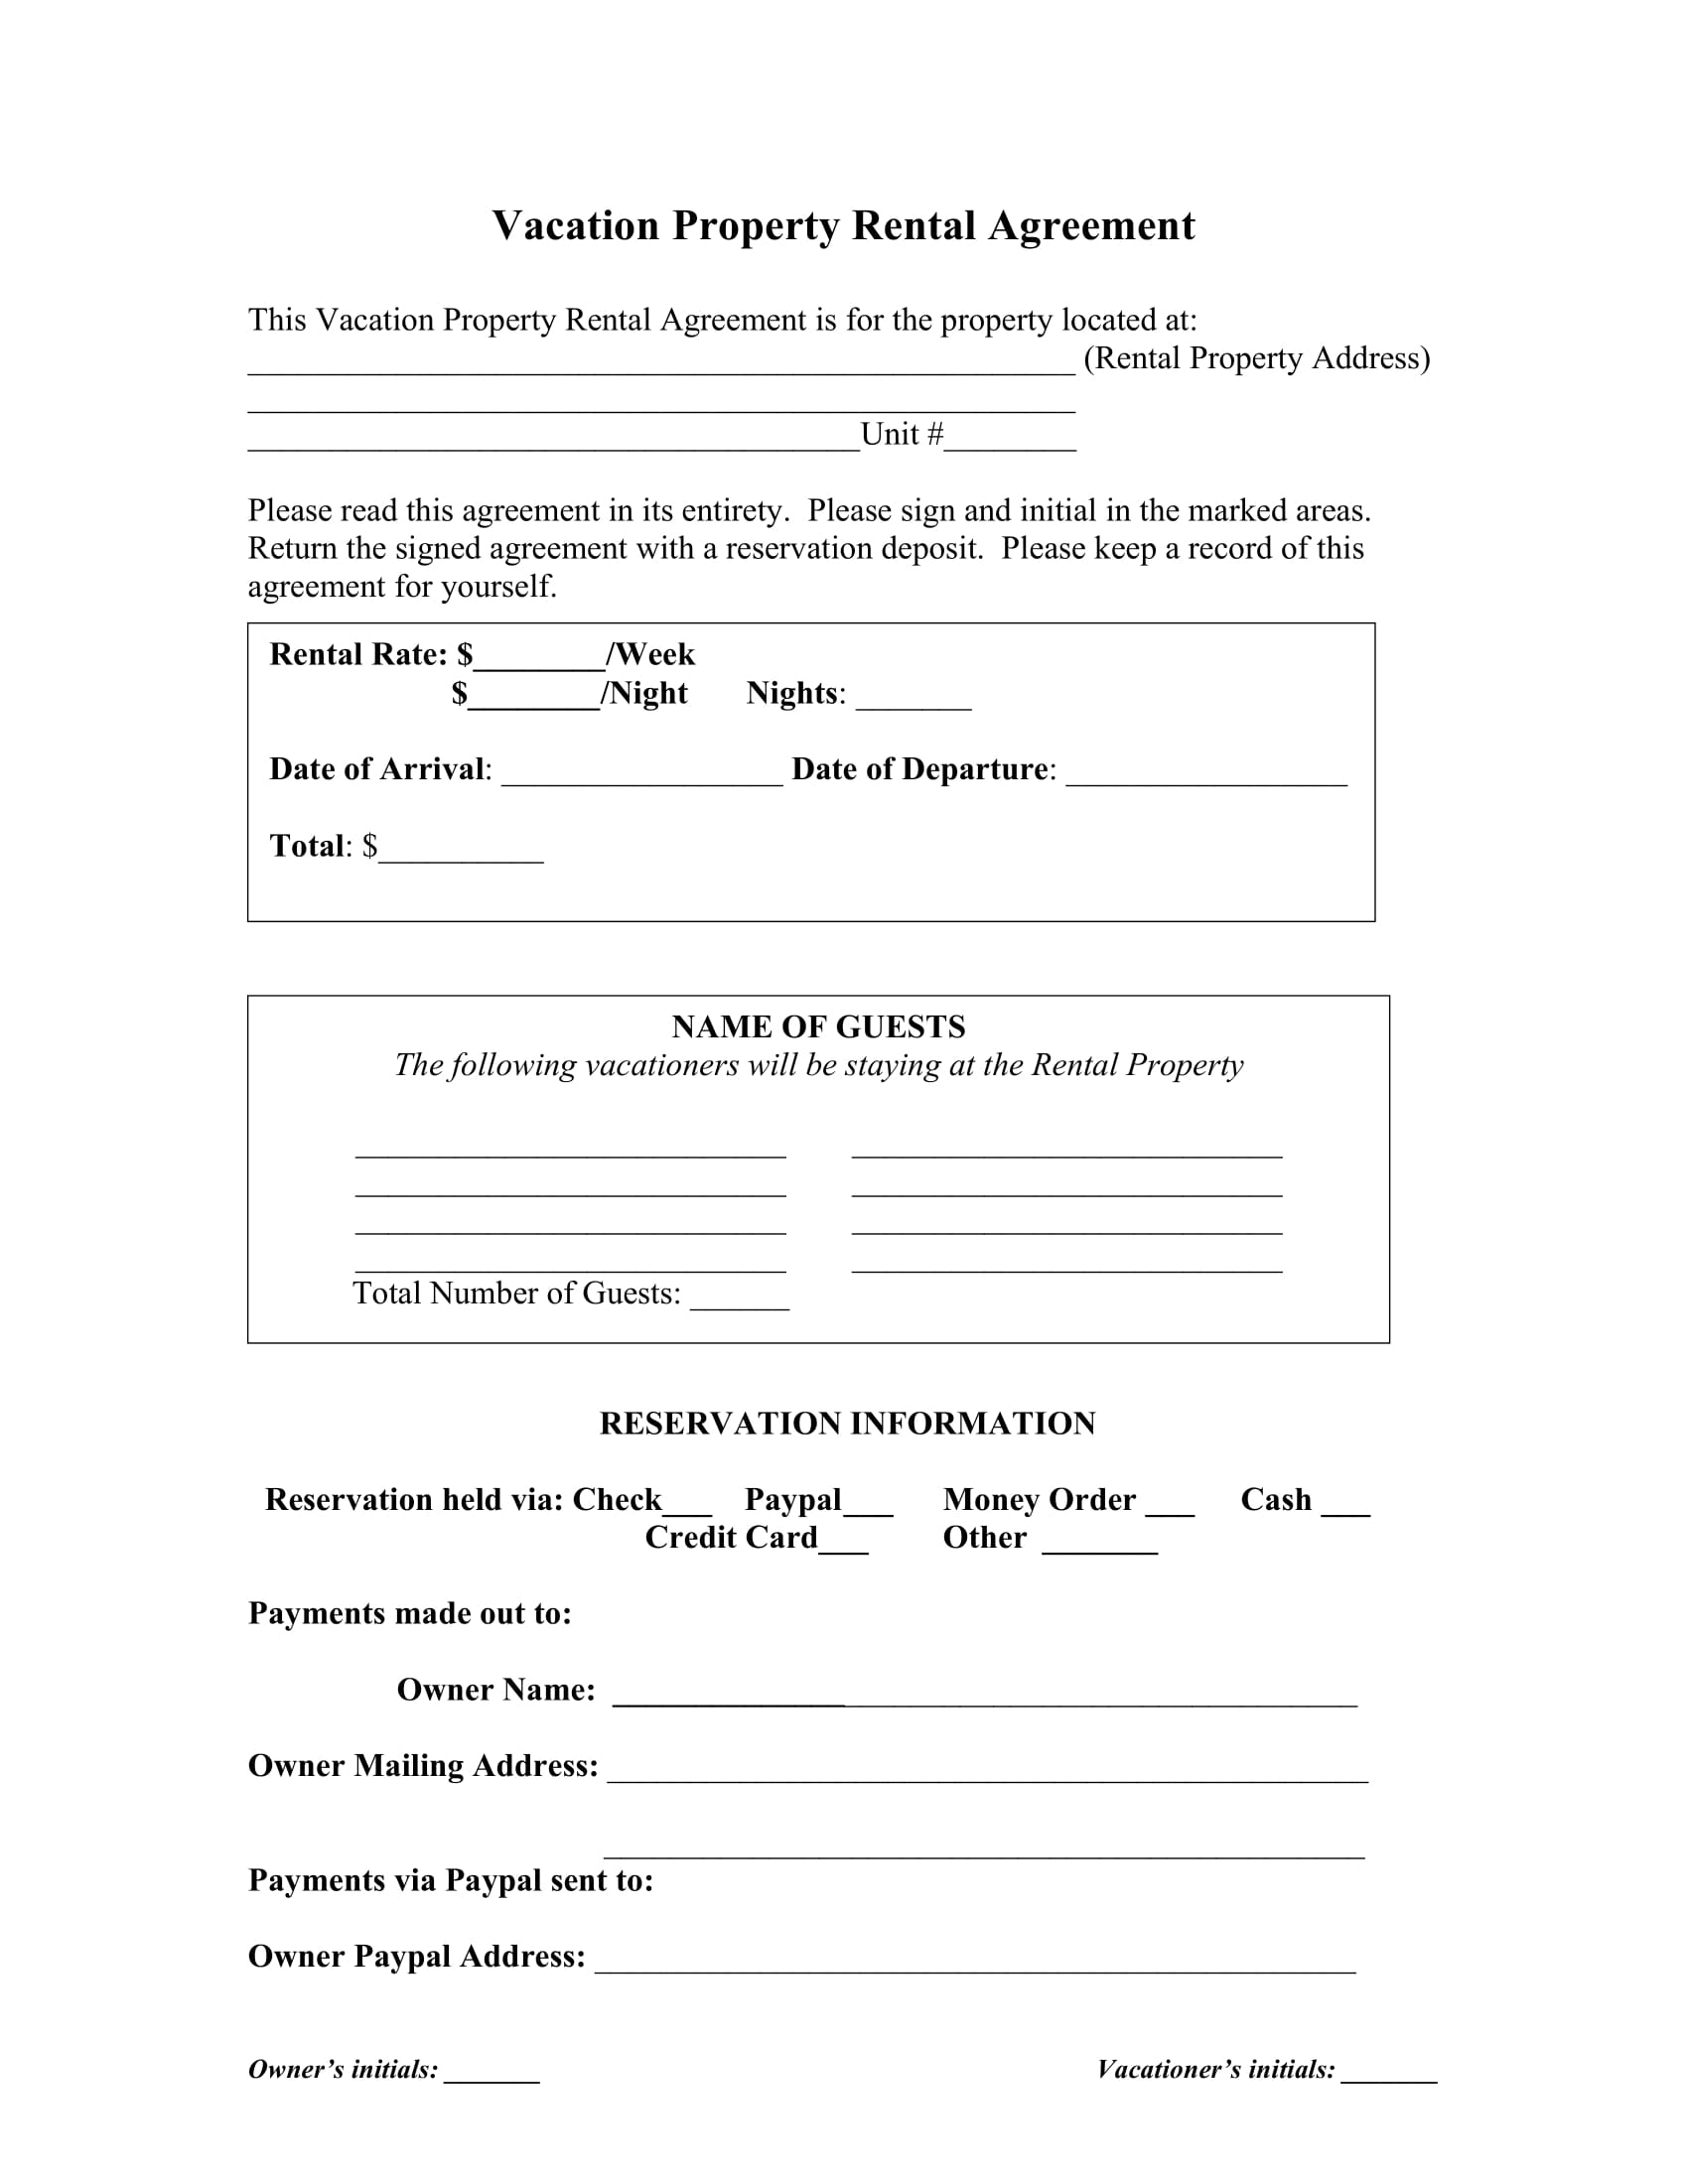 vacation property rental agreement contract form 2